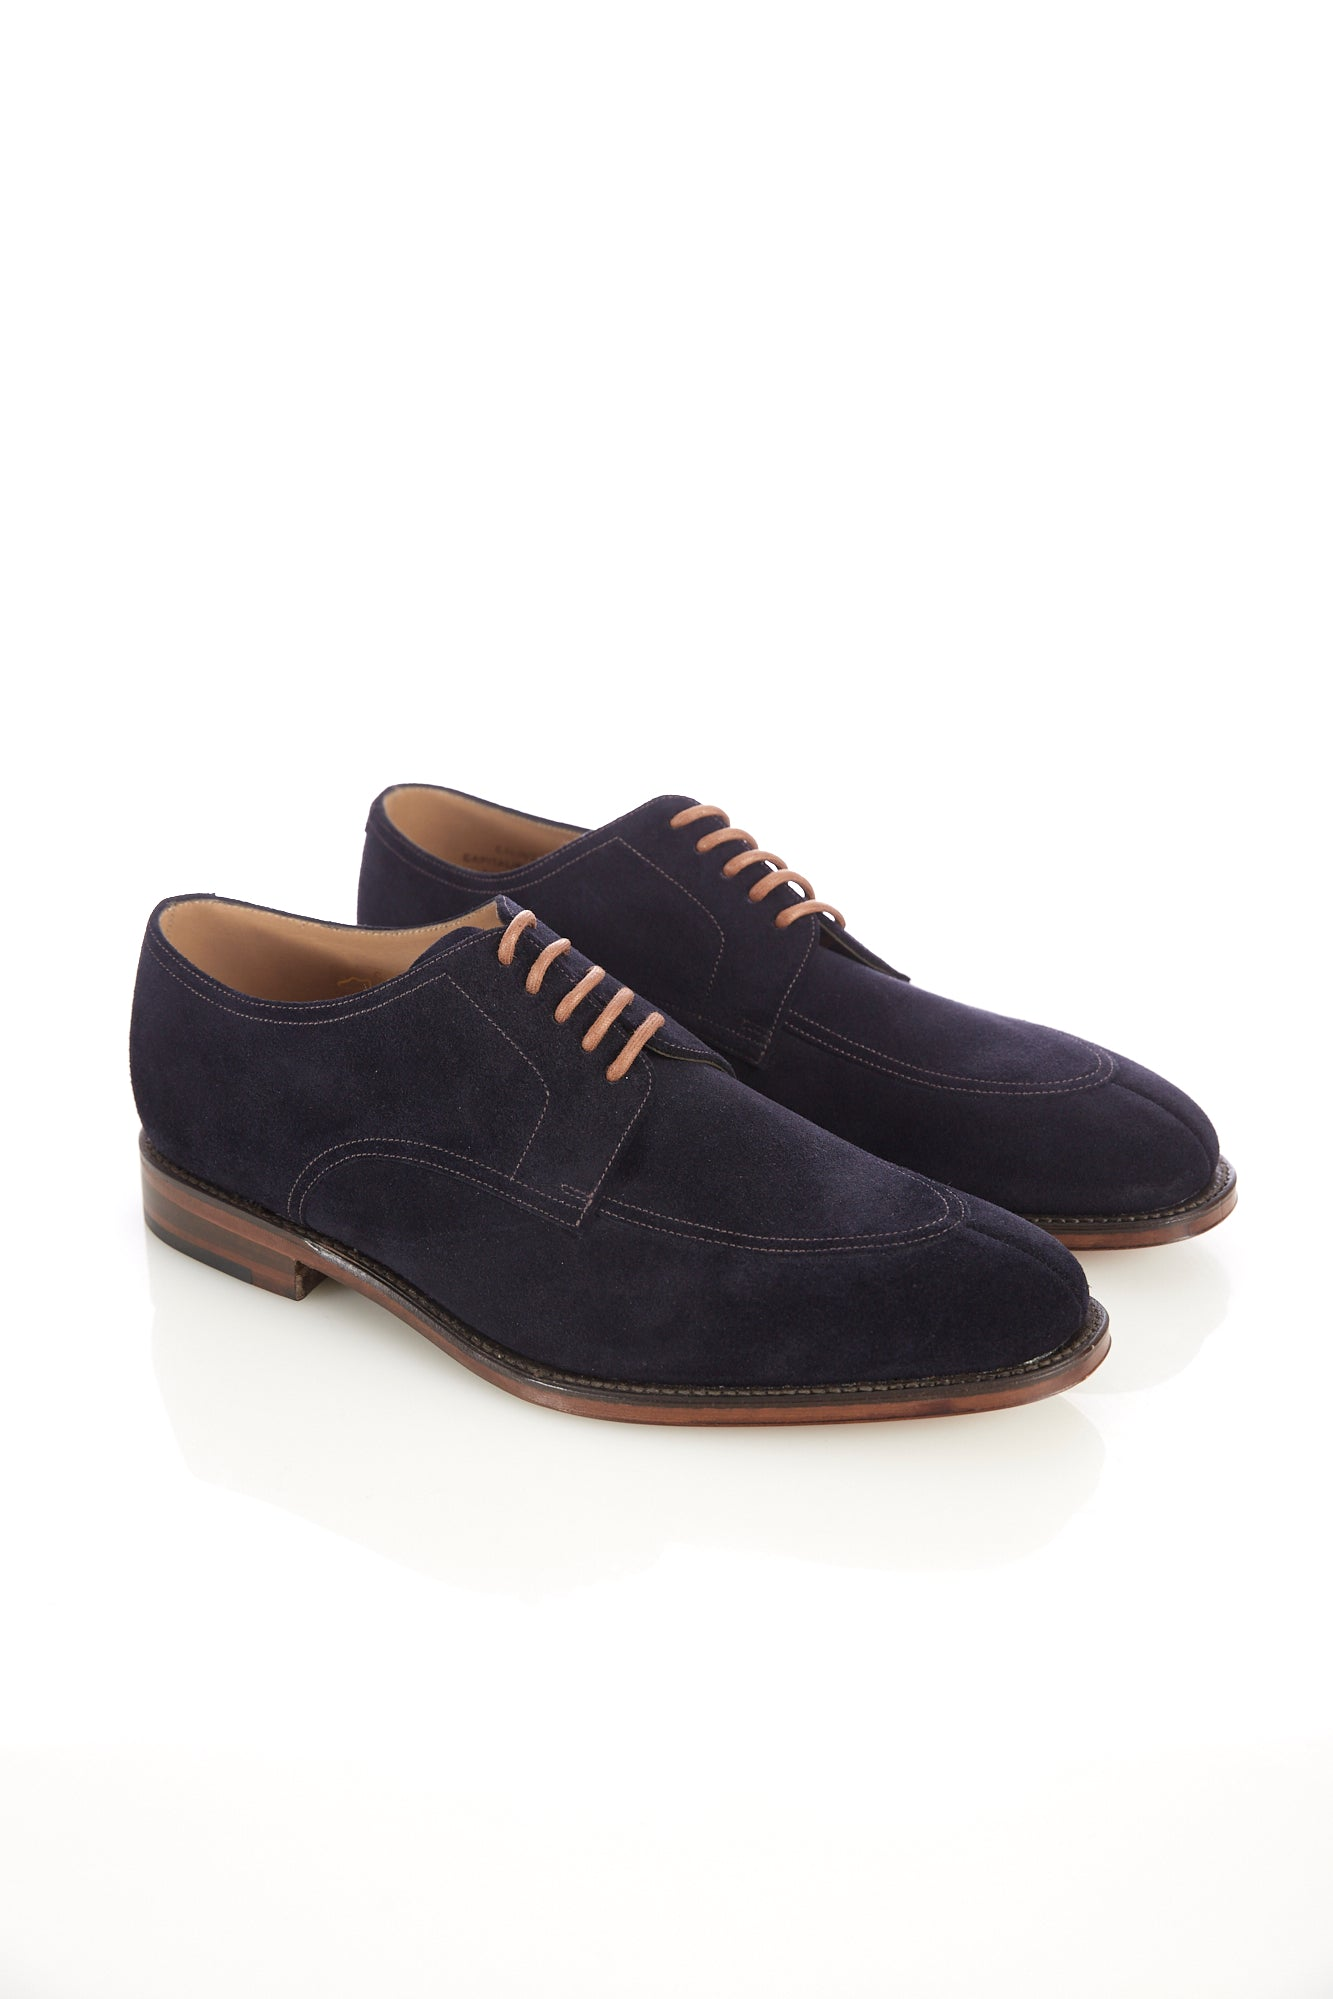 Loake 1880 Ealing Navy Suede Split-Toe Shoe - Shoes - Loake - LALONDE's